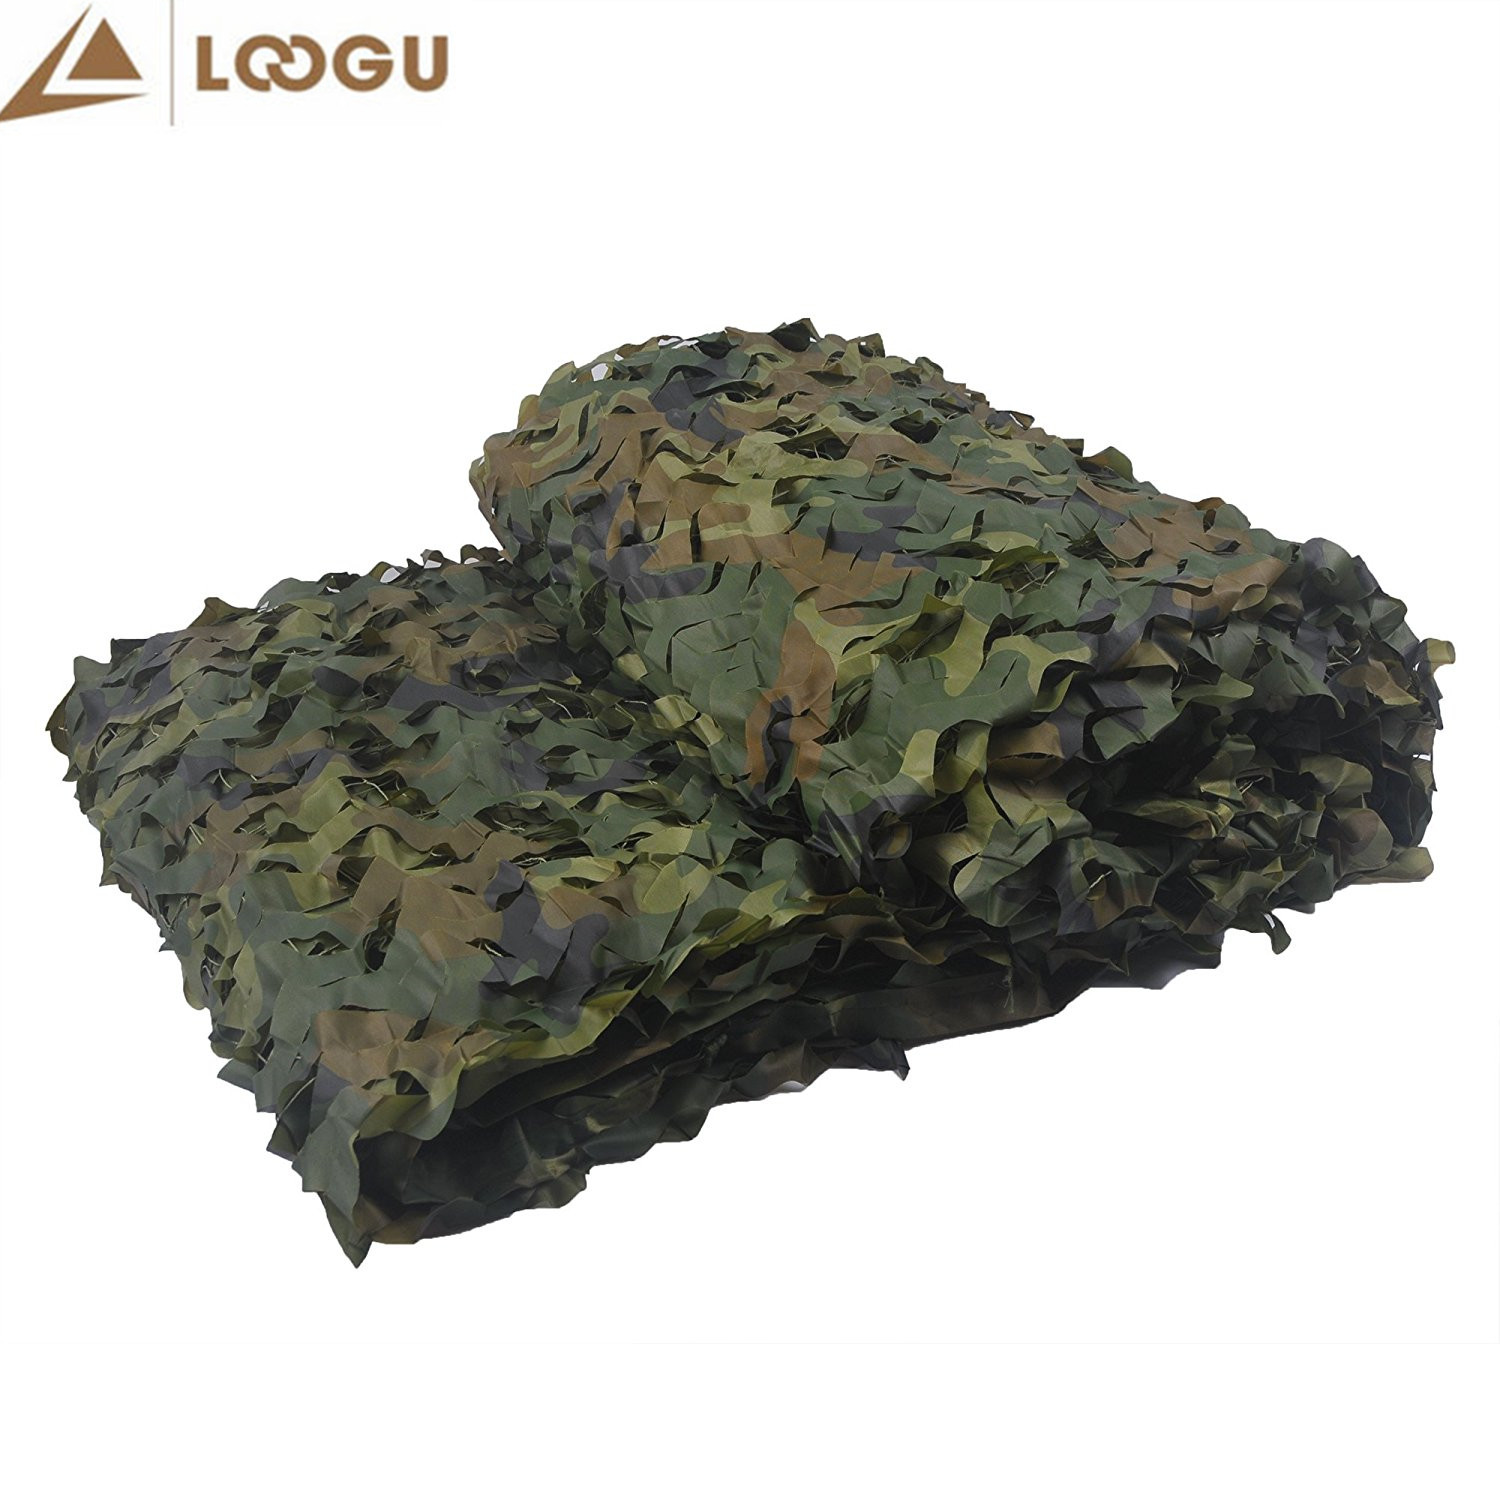 3M*6M Military Camouflage Net Sun Shelter 150D Polyester Oxford Camouflage Net Sun Shelter for Hunting Camping Tourist Sun Tents 5 5m camouflage net camping beach tents 150d polyester oxford ultralight sun uv camouflage net outdoor camping beach tents